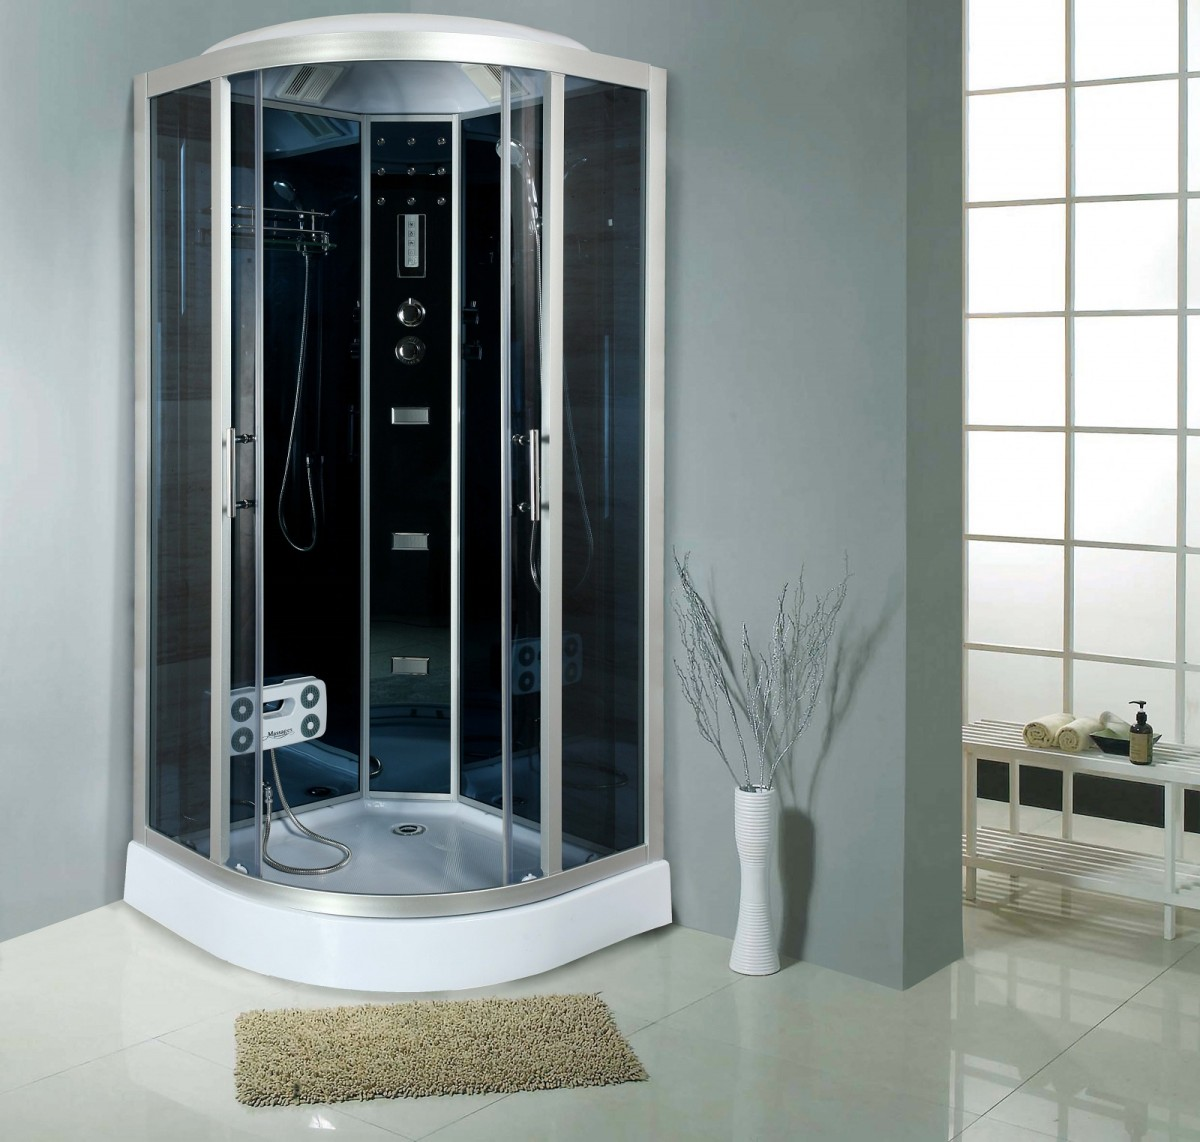 cabine de douche compl te sanifun savio 90 x 90. Black Bedroom Furniture Sets. Home Design Ideas